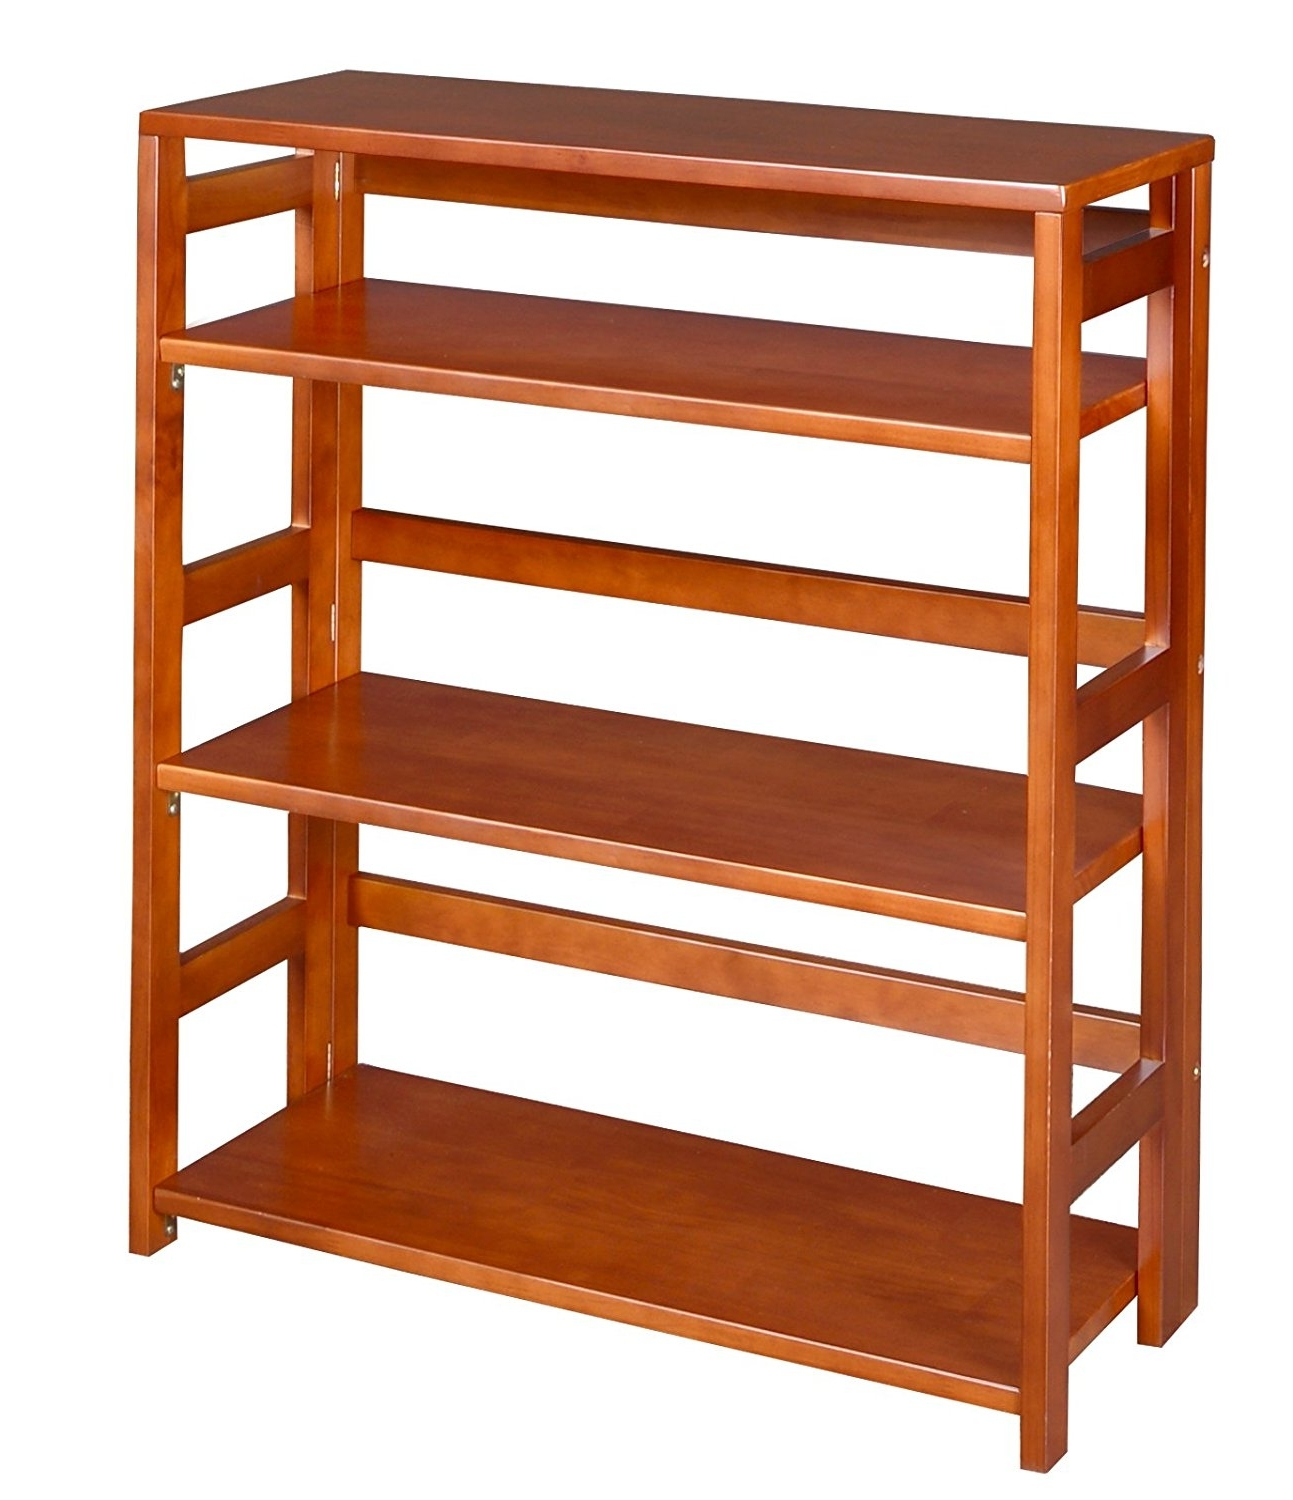 Popular Amazon: Regency Flip Flop 34 Inch High Folding Bookcase Regarding Foldable Bookcases (View 2 of 15)